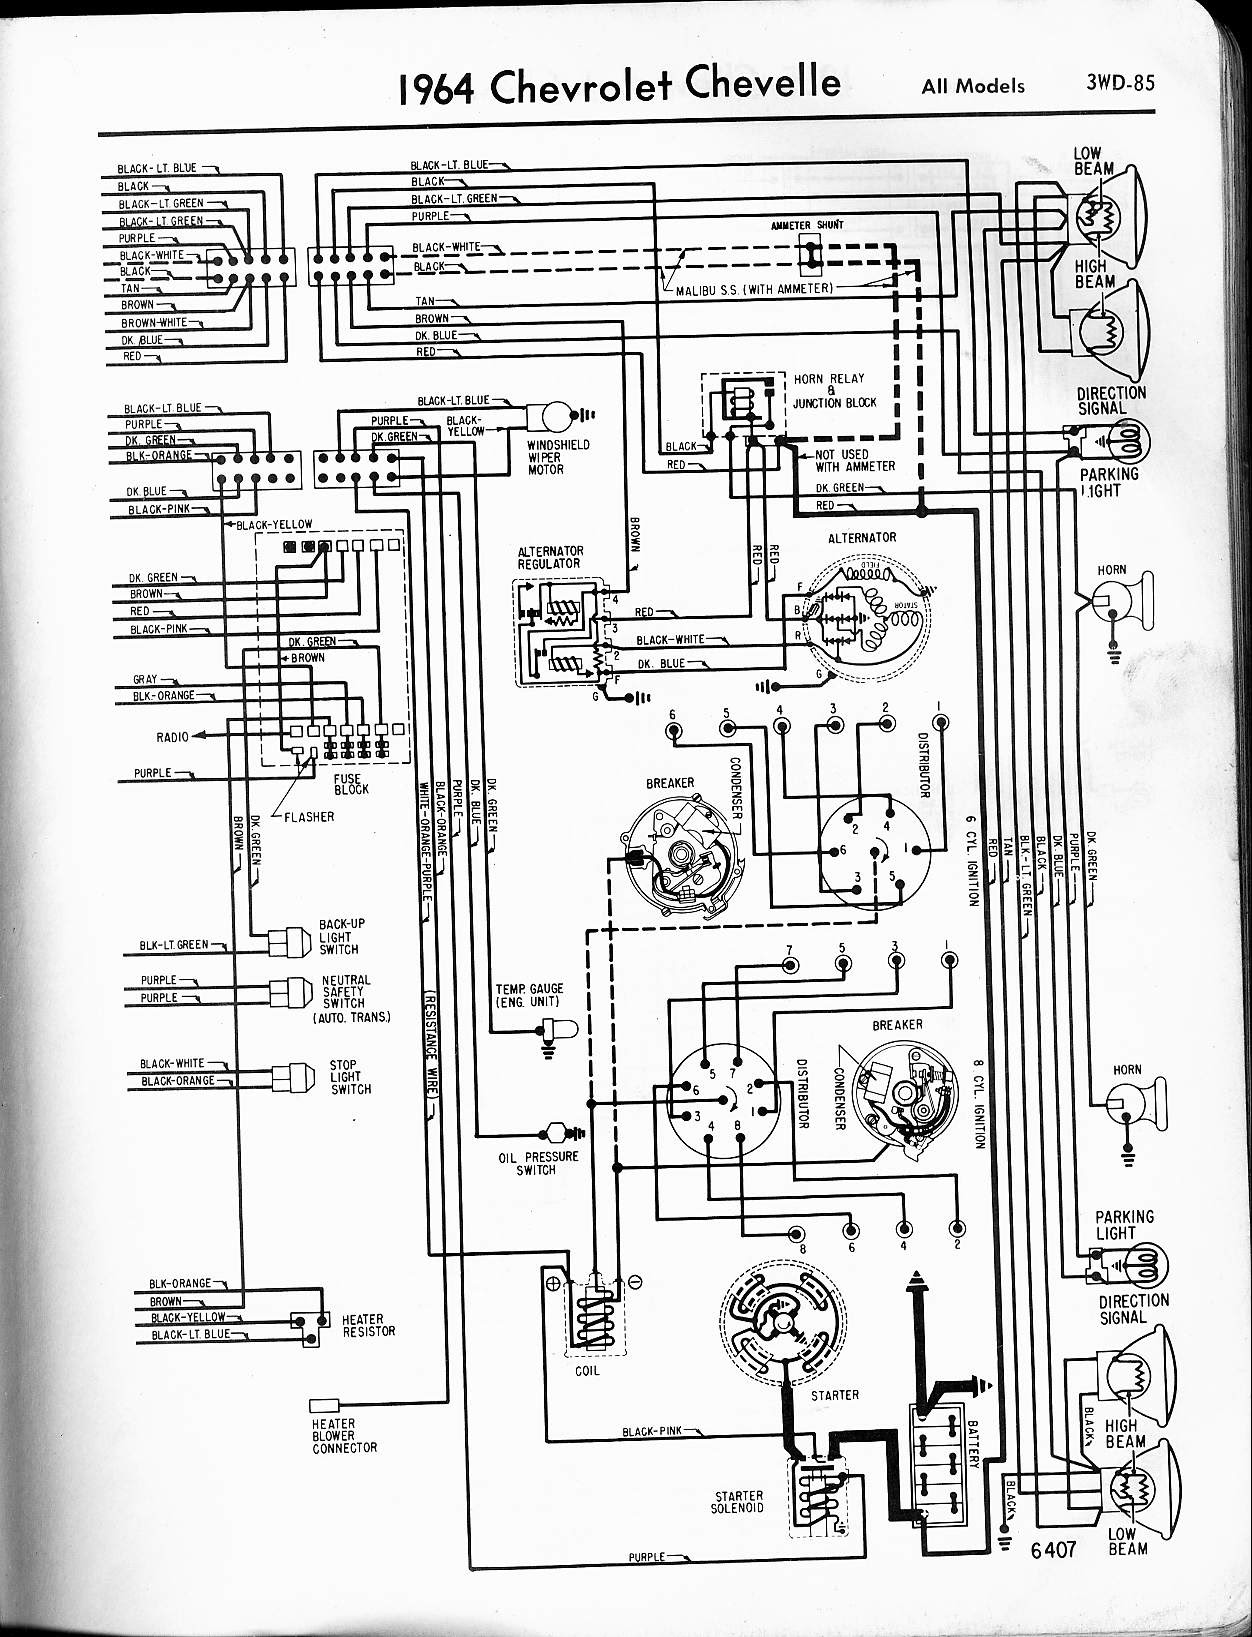 1970 Mustang Wiring Schematic For Lights Wiring Diagrams Swm And Deca 8 Mazda3 Sp23 Ati Loro Jeanjaures37 Fr